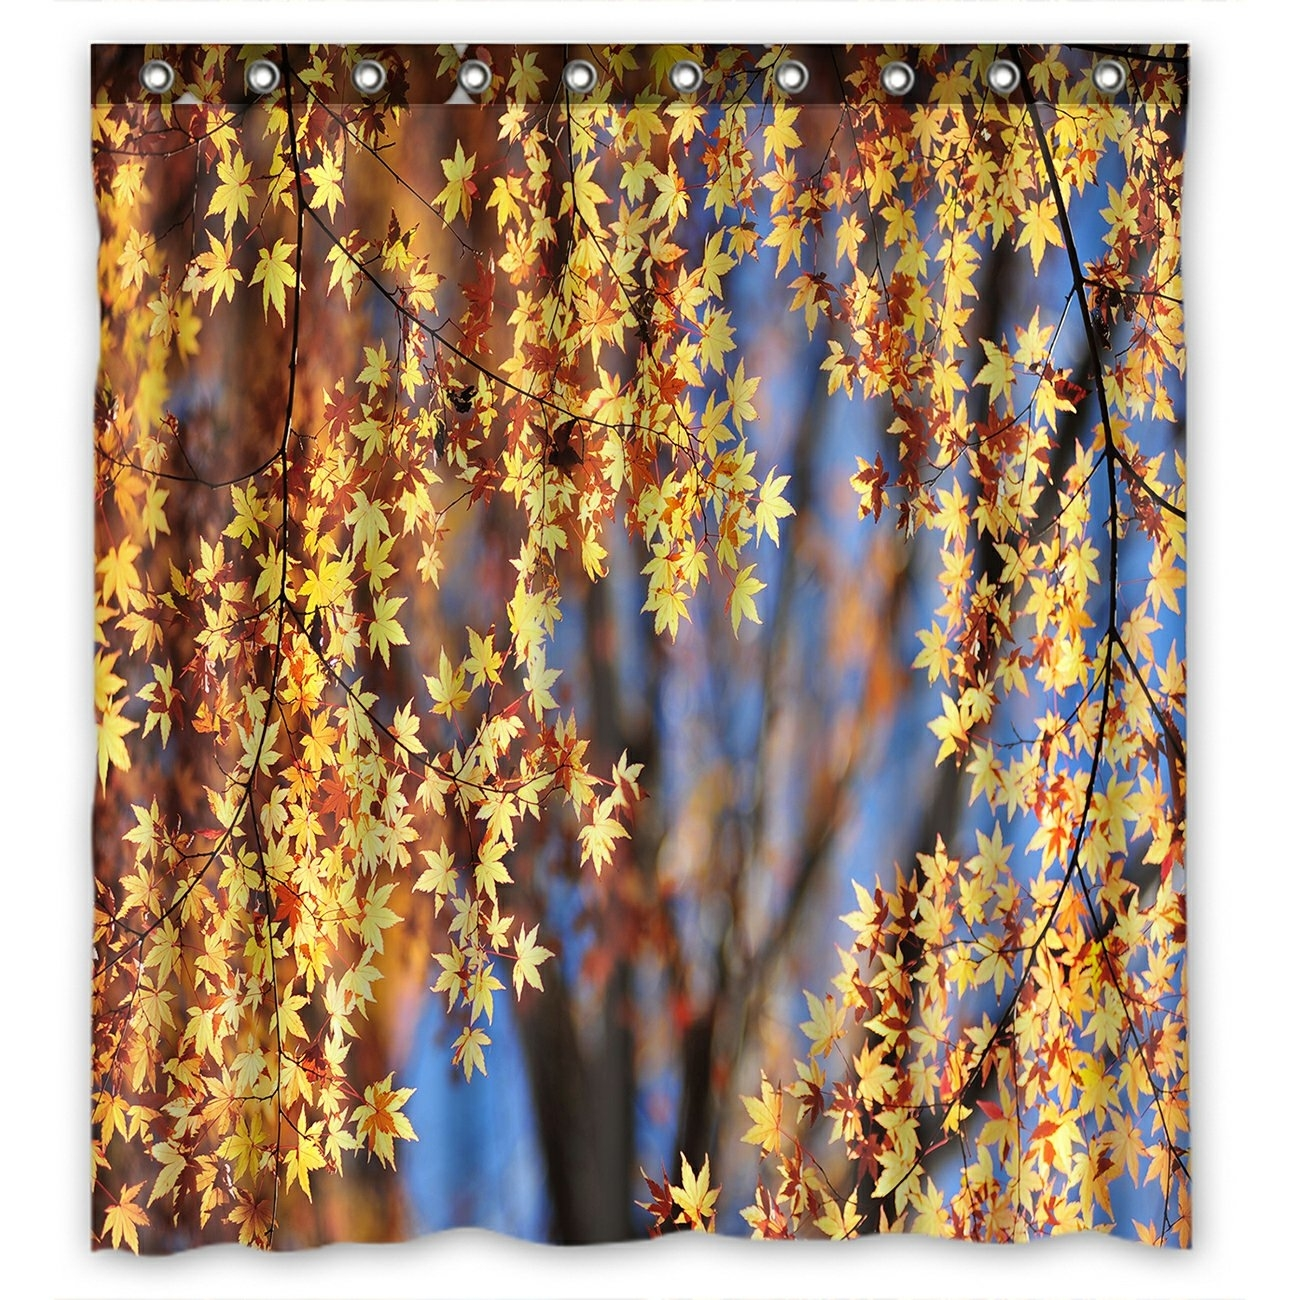 Landscape Shower Curtain, Autumn Maple Leaves Shower Curtain 66x72 inch